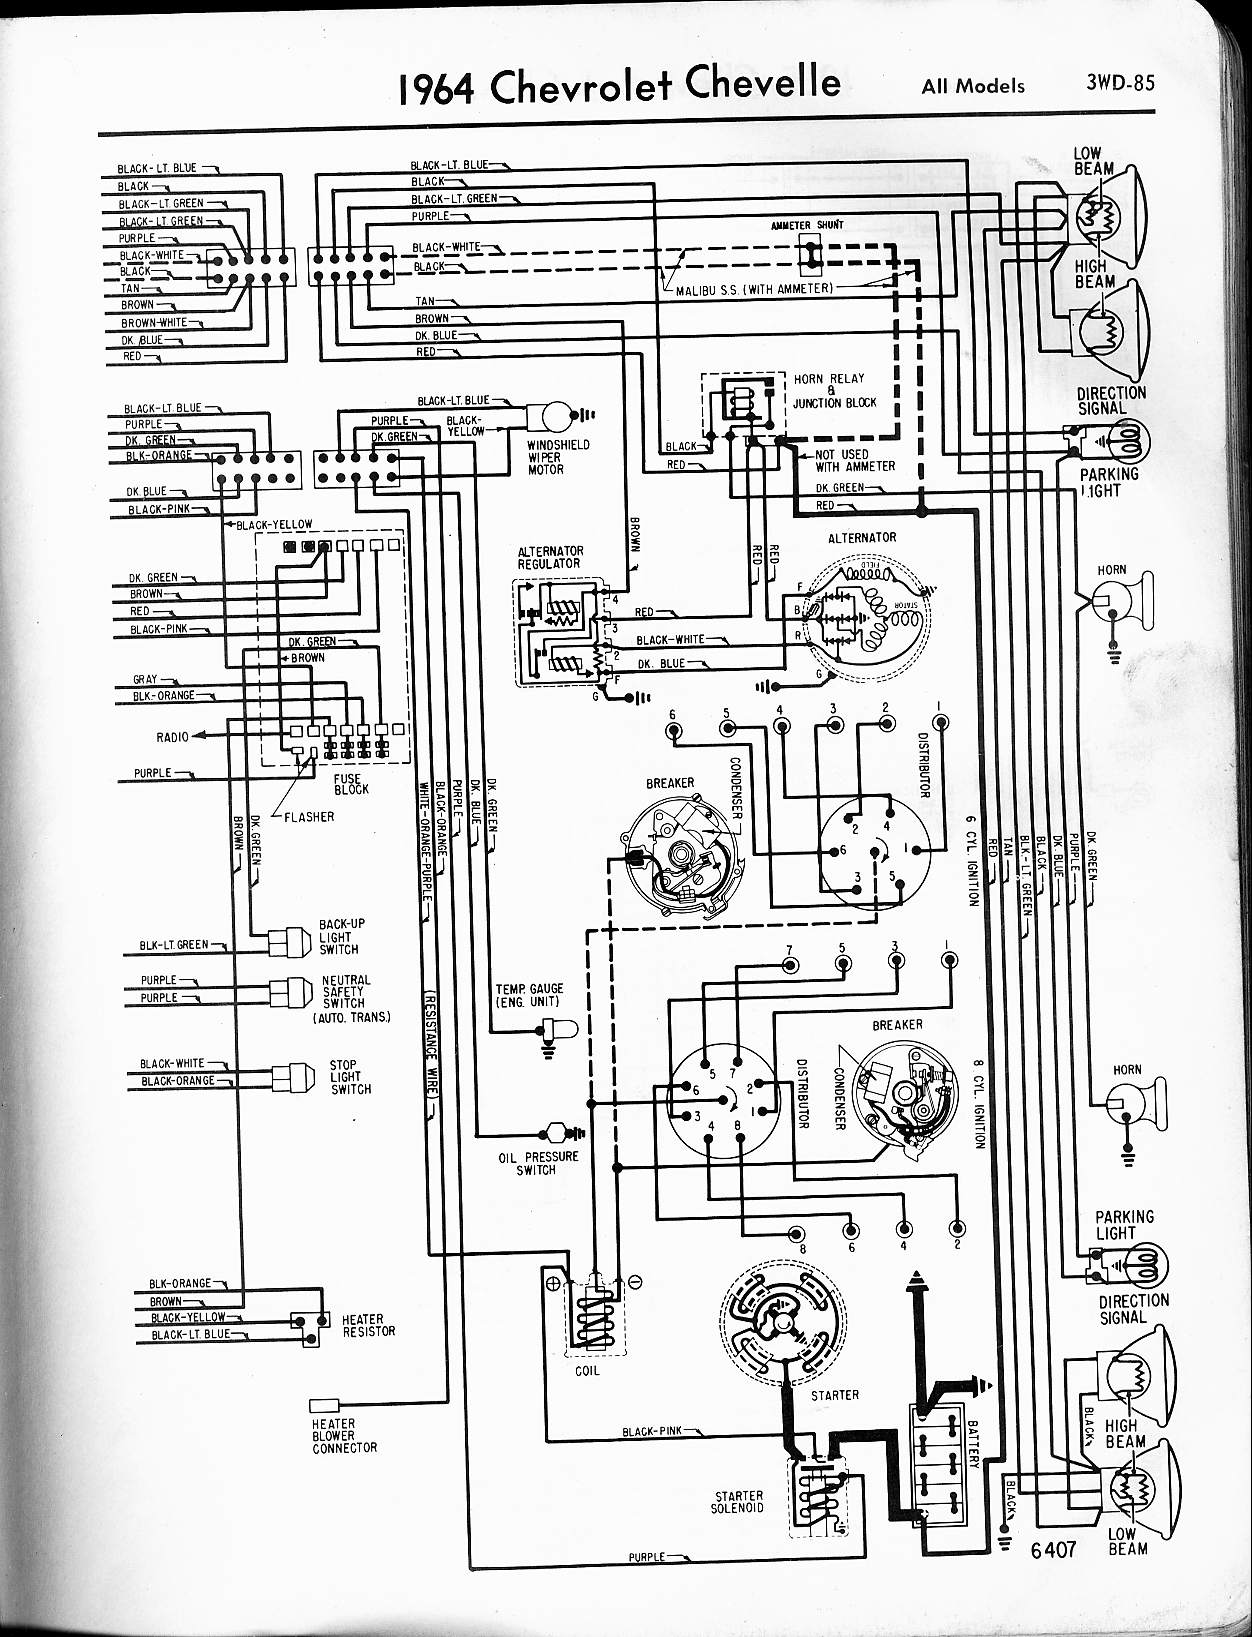 hight resolution of chevy diagrams rh wiring wizard com 1965 chevy chevelle wiring diagram 68 chevelle wiring diagram